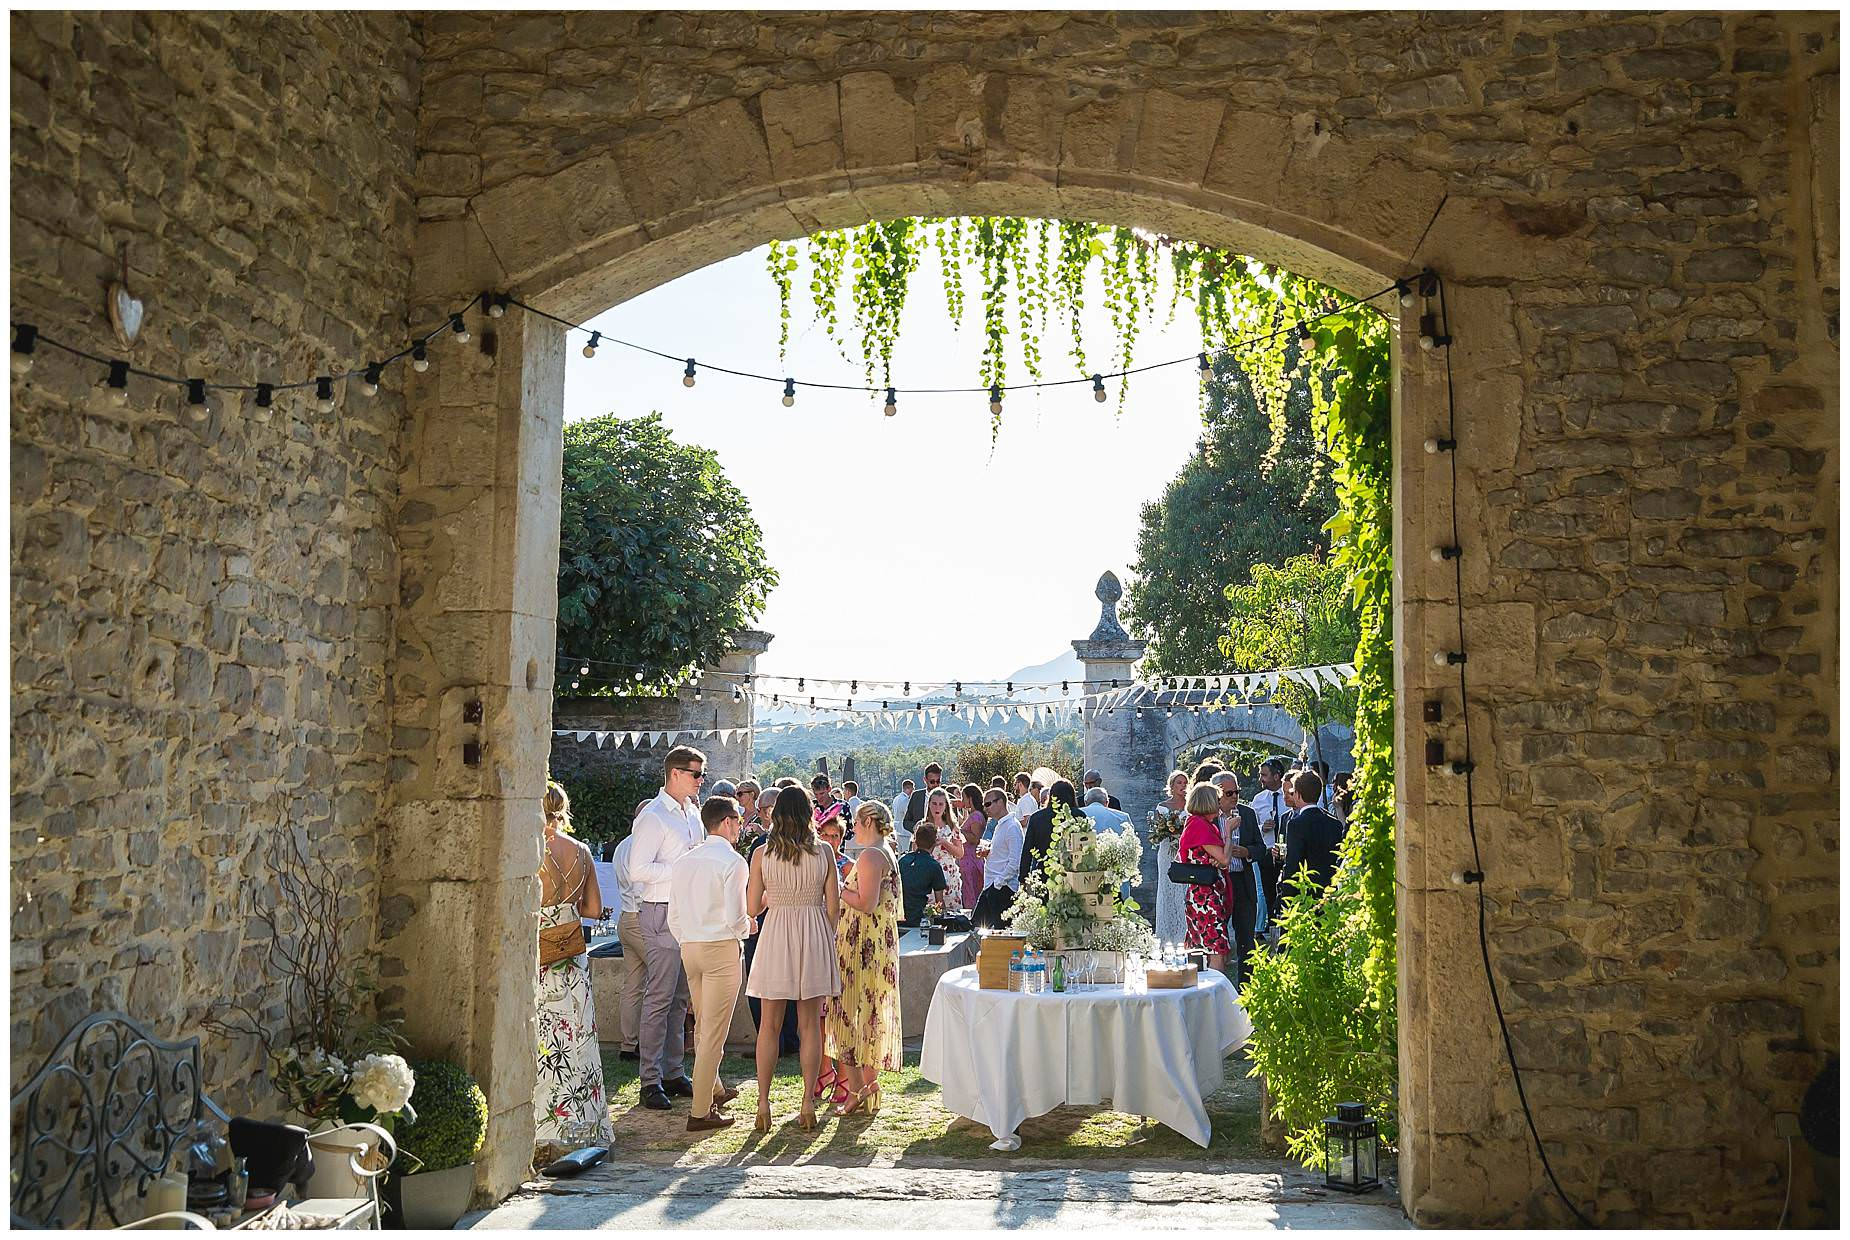 Domaine Saint Germain wedding reception